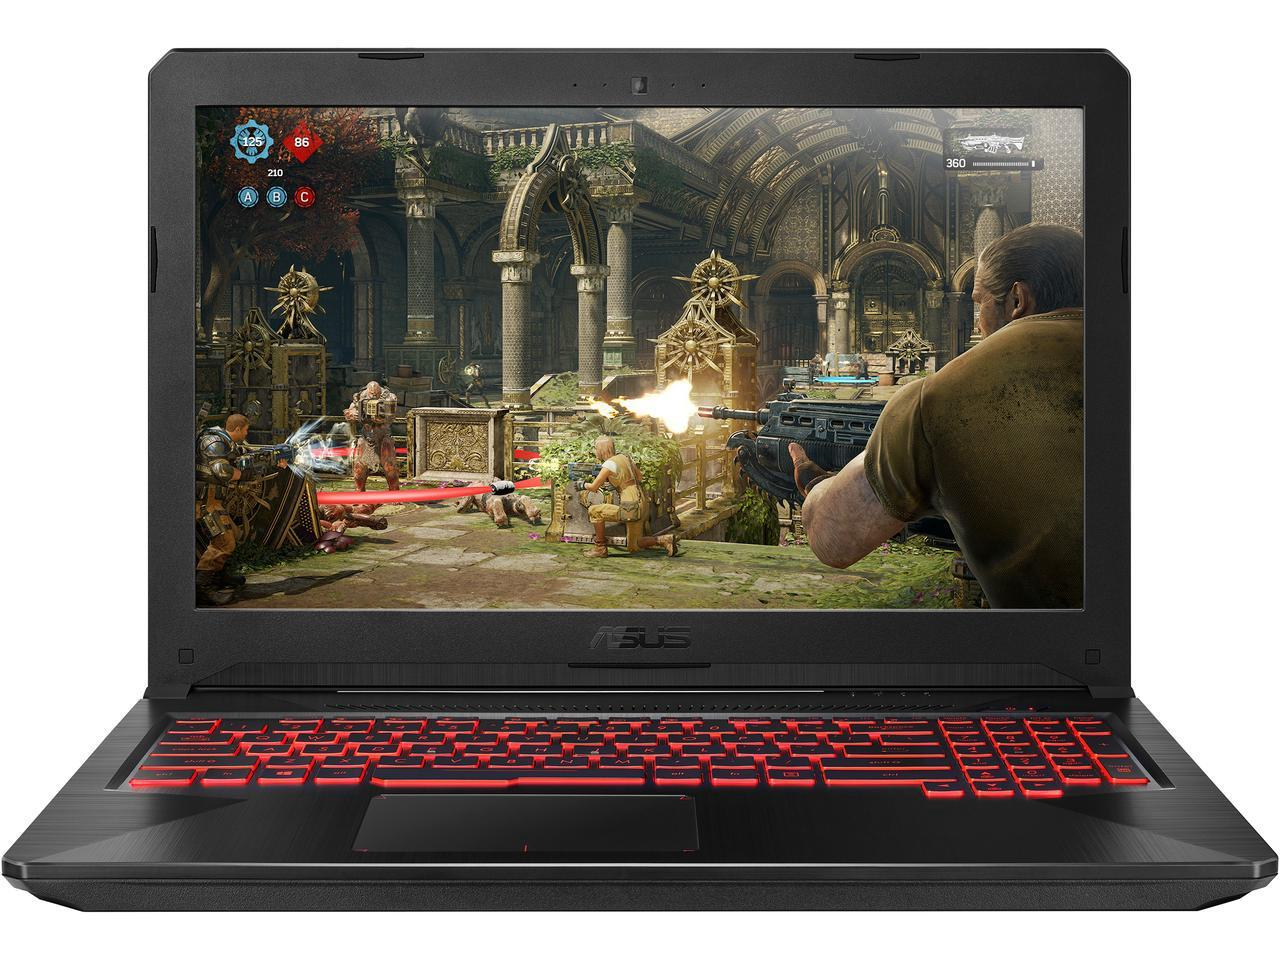 "Asus TUF Gaming 15.6"" FHD Gaming Laptop (i5-8300H / 8GB / 256GB SSD)"